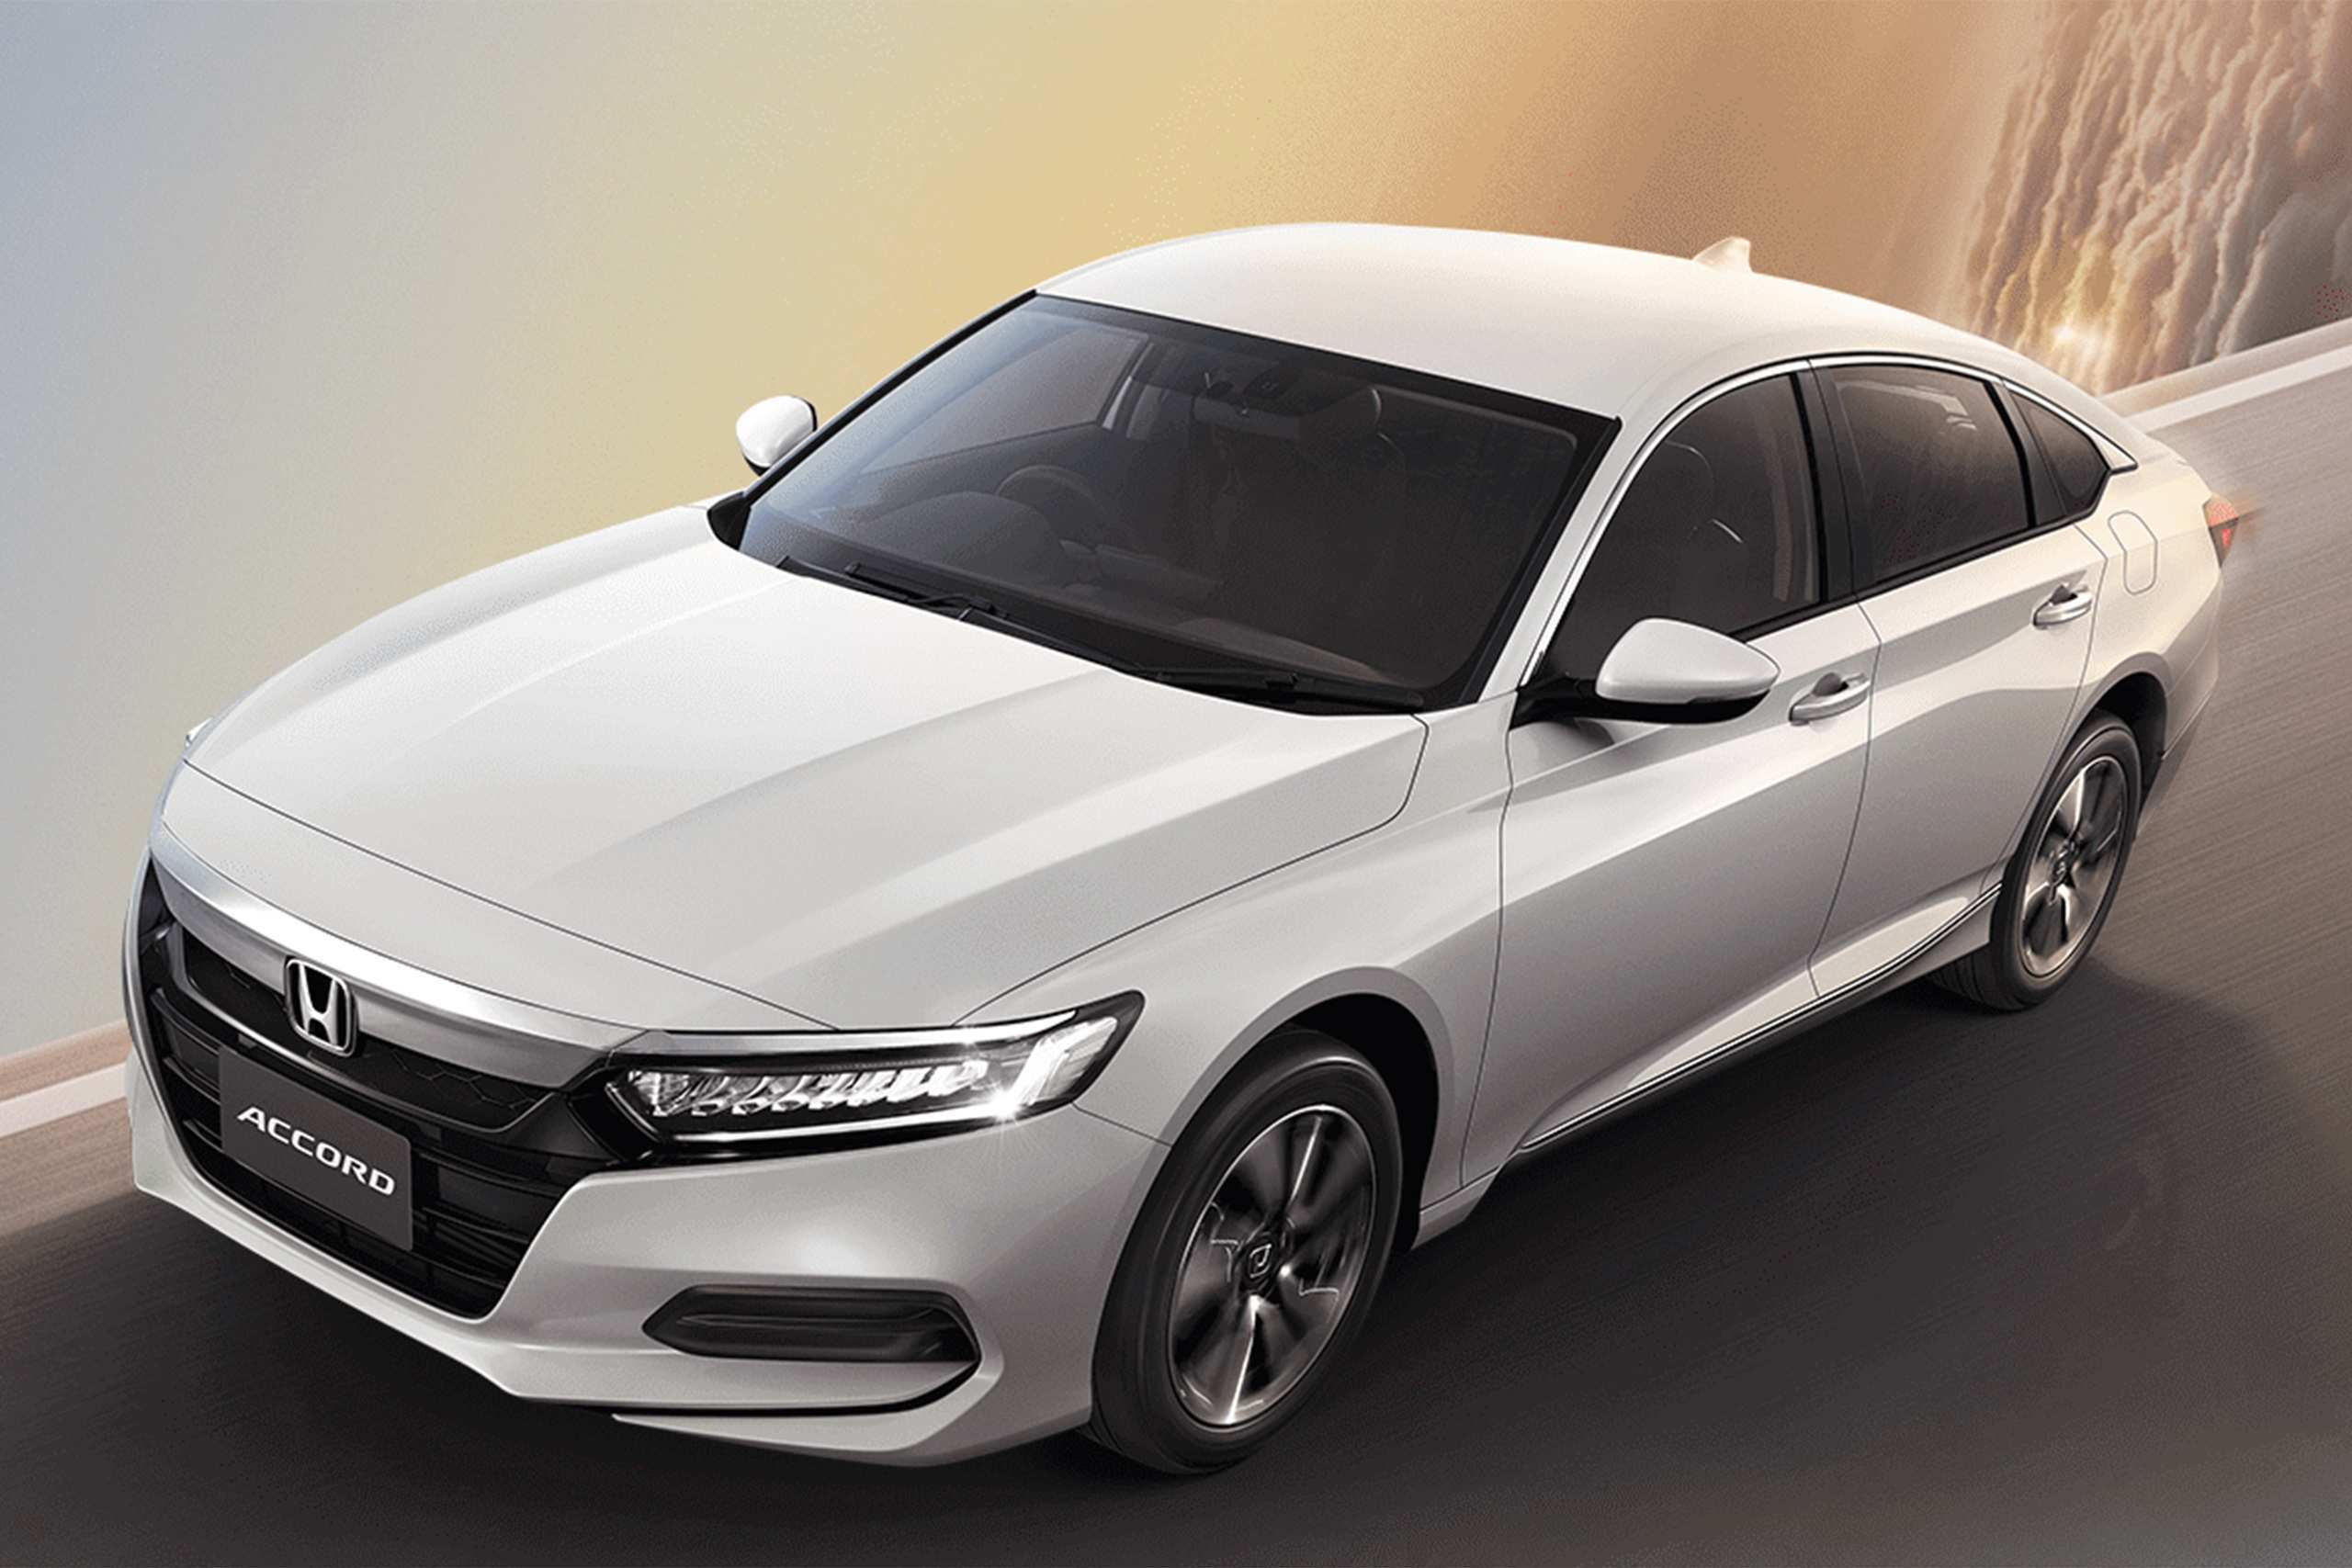 81 The Best 2019 Honda Accord Price And Review